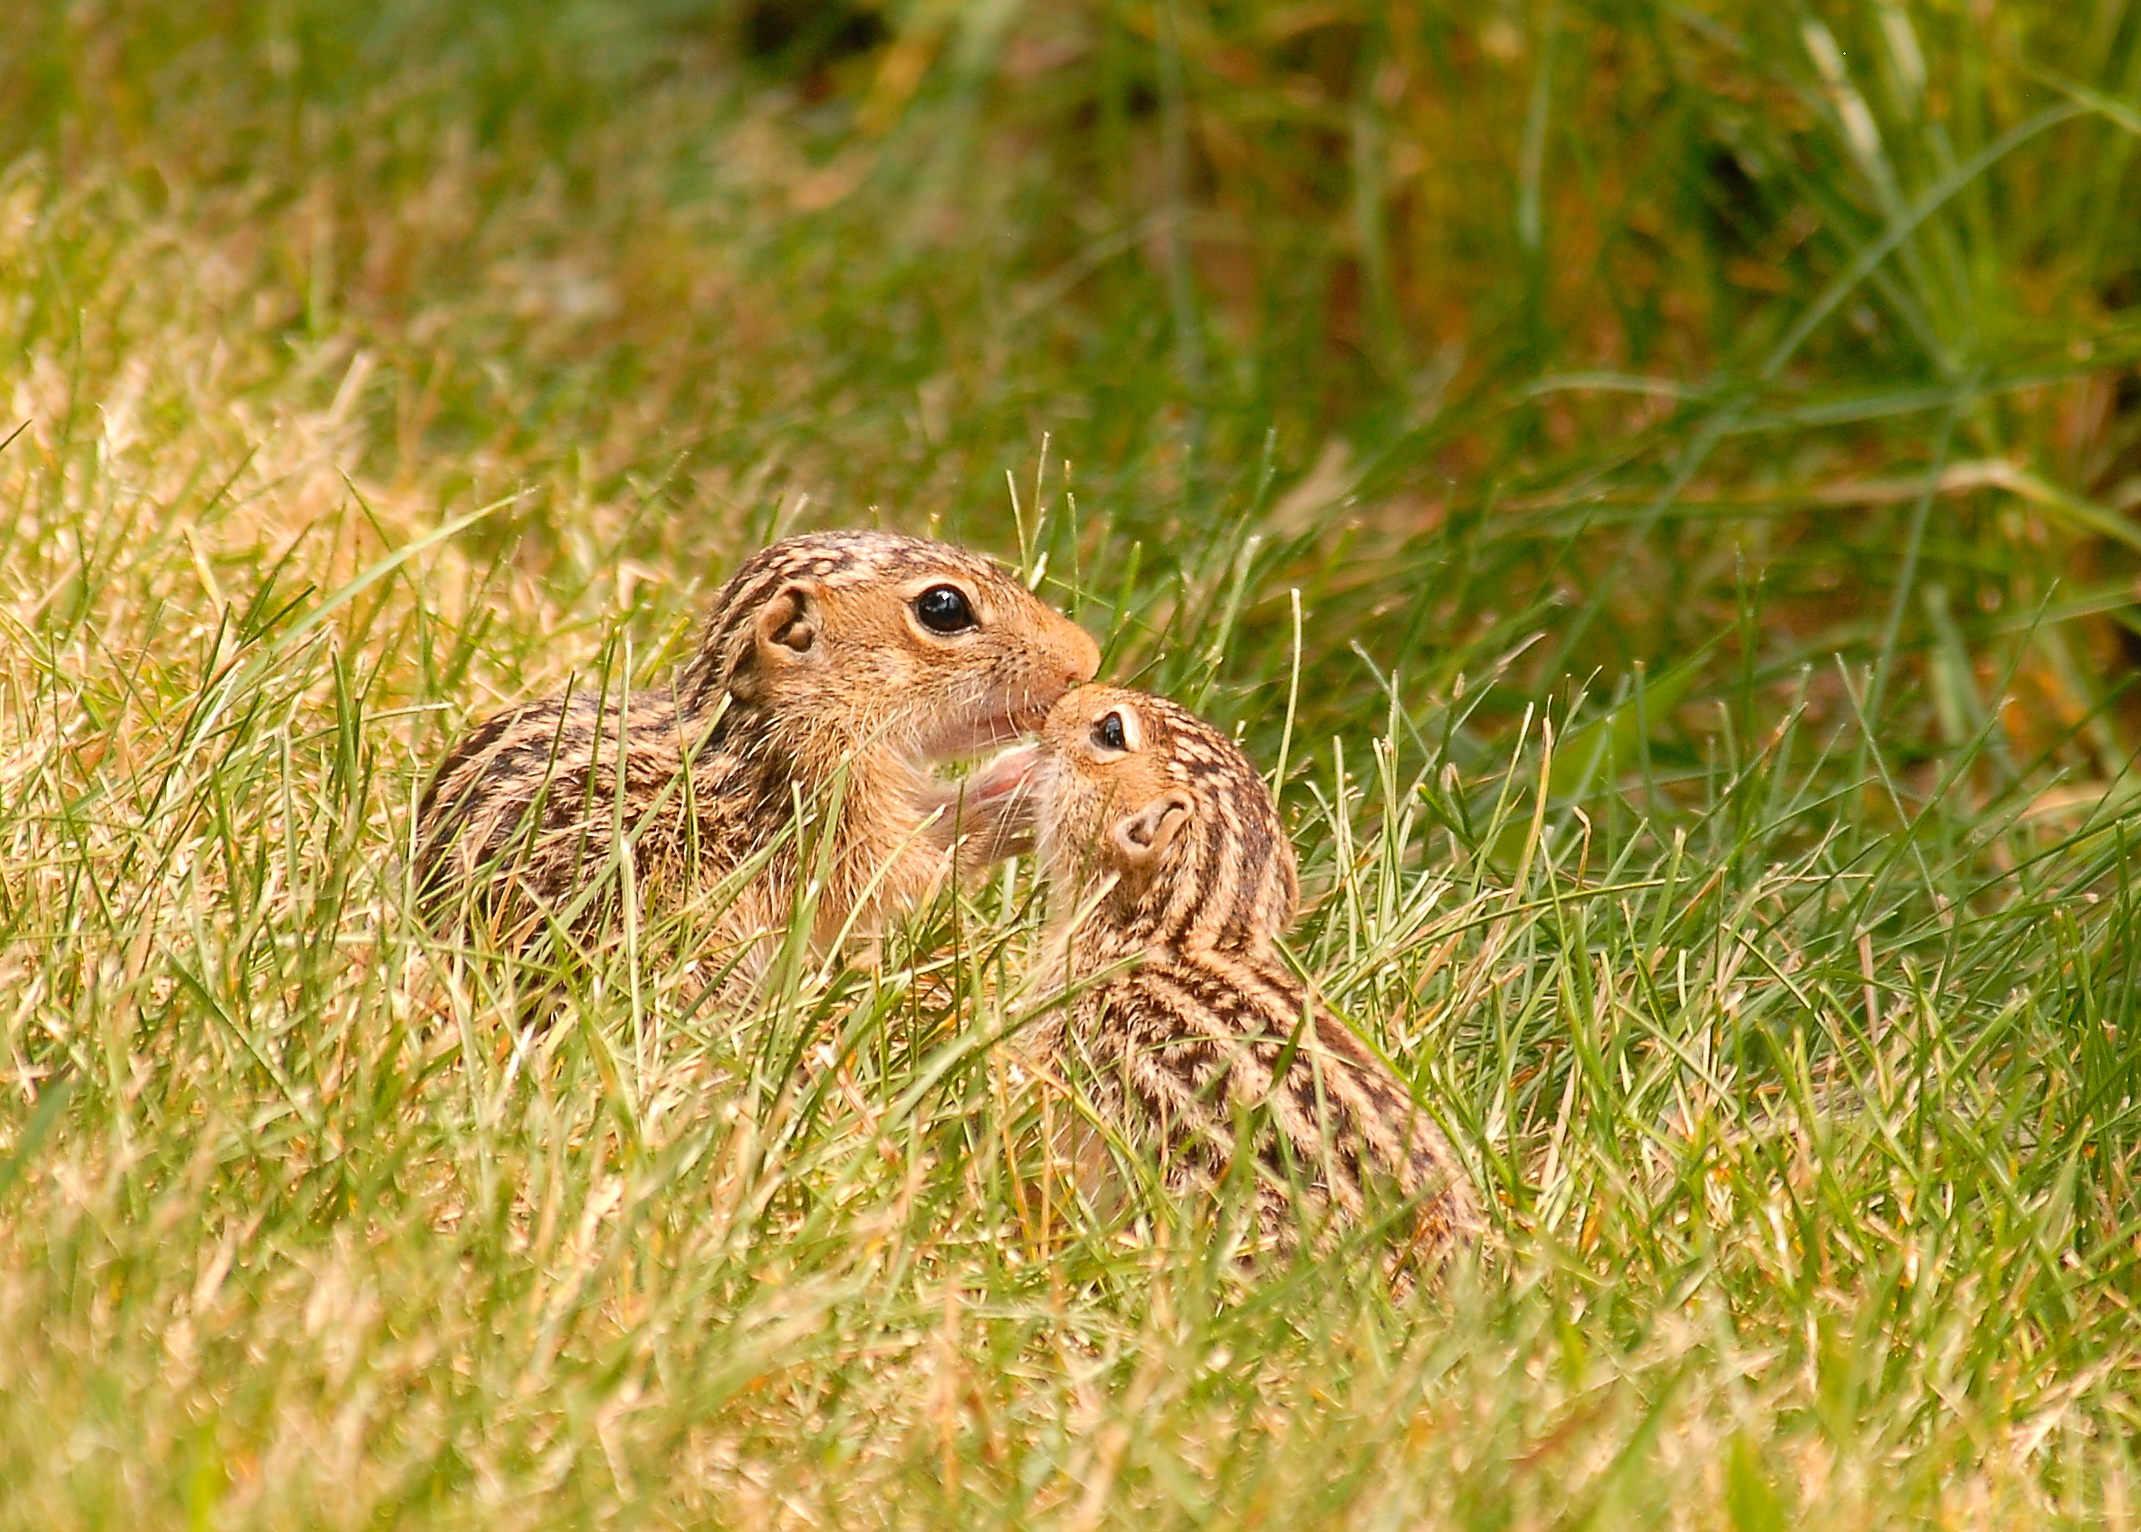 These two thirteen-lined ground squirrels look playful, but they can wreck havoc on grassland bird nests. Photo by Josh More